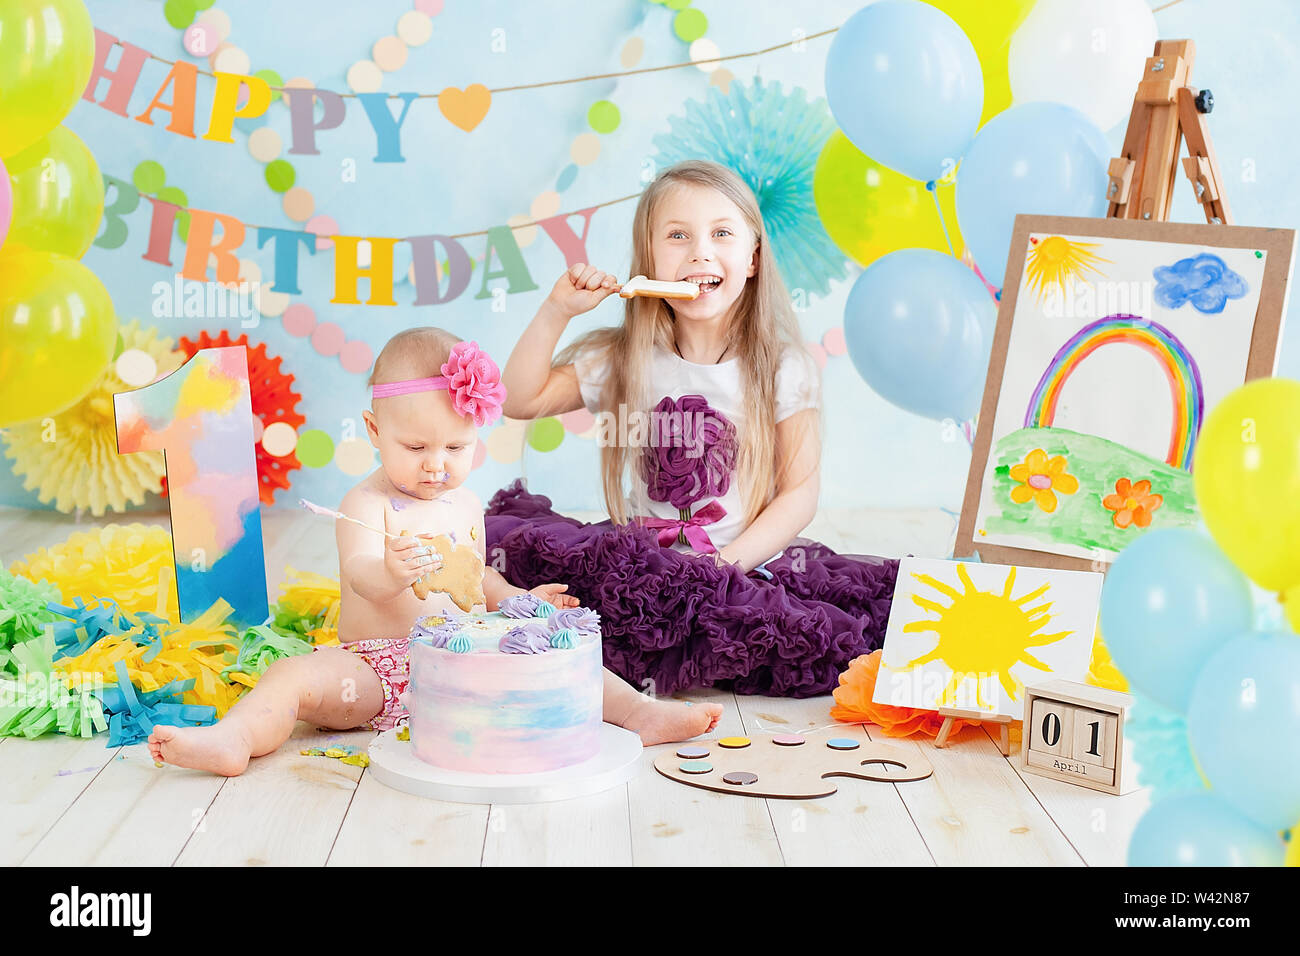 Awe Inspiring Decoration For Girls First Birthday Smash Cake In A Art Painter Funny Birthday Cards Online Barepcheapnameinfo